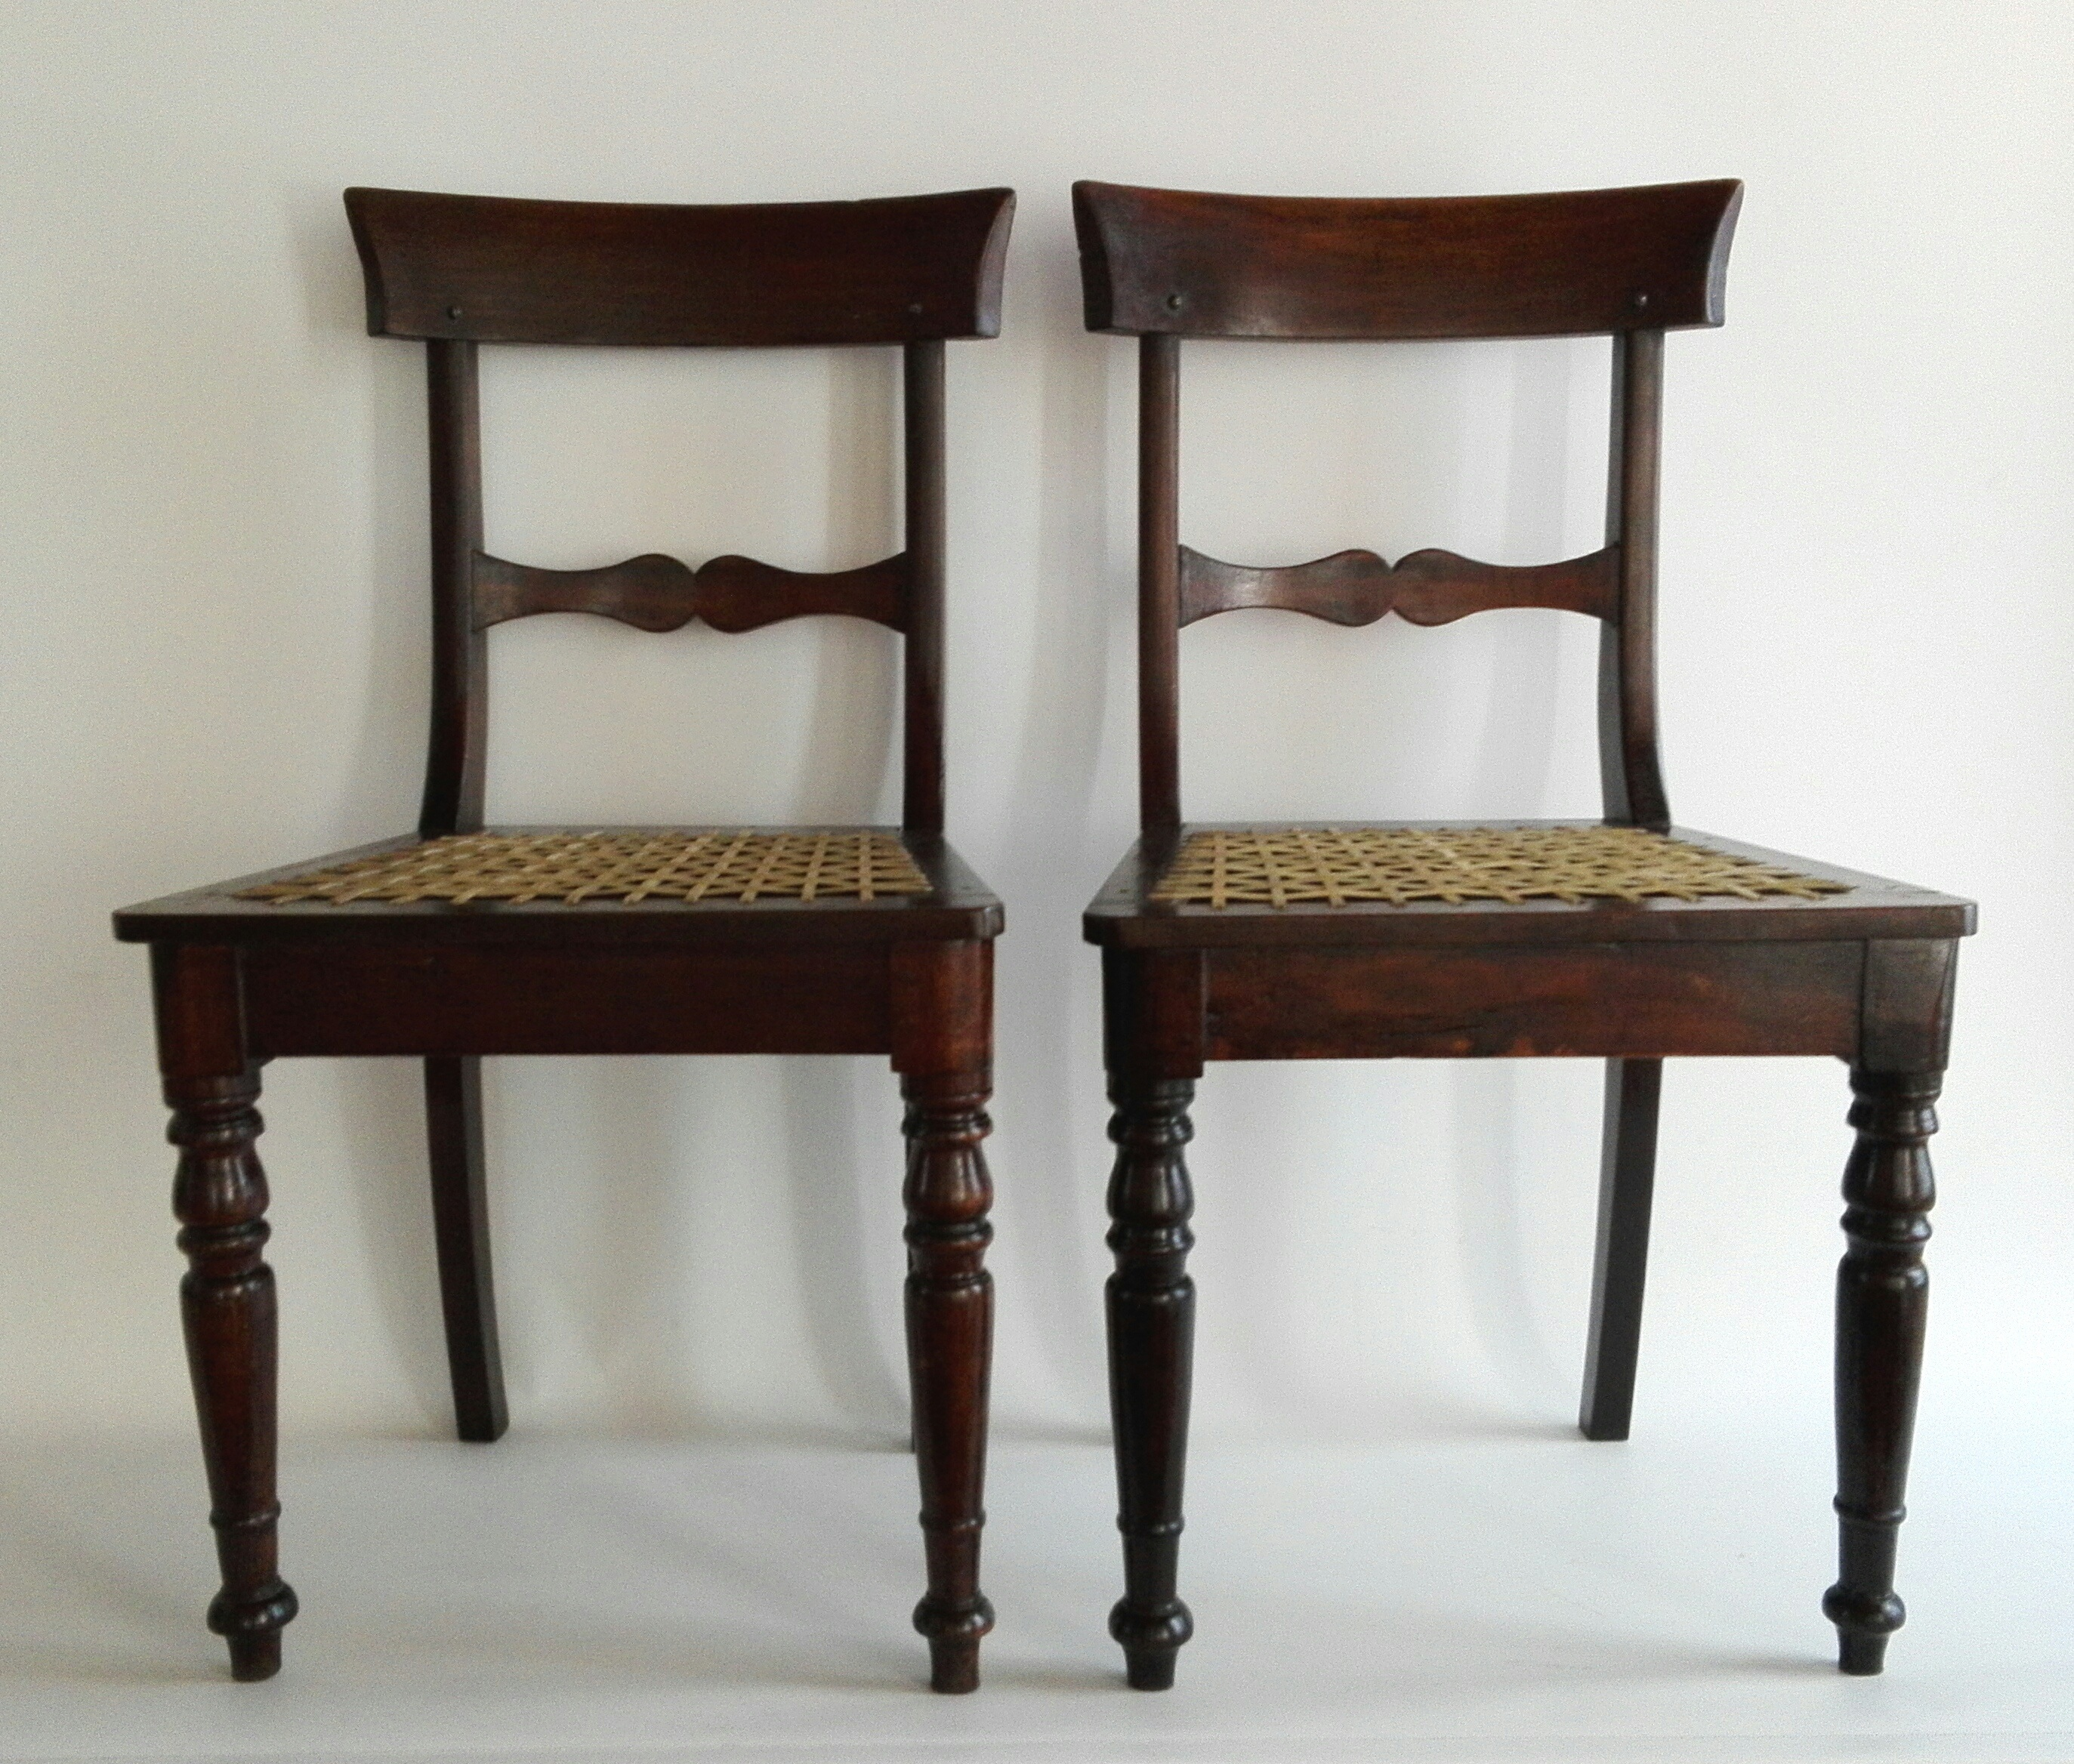 Pair Of 19th Century Stinkwood And Riempie Cape Regency Chairs